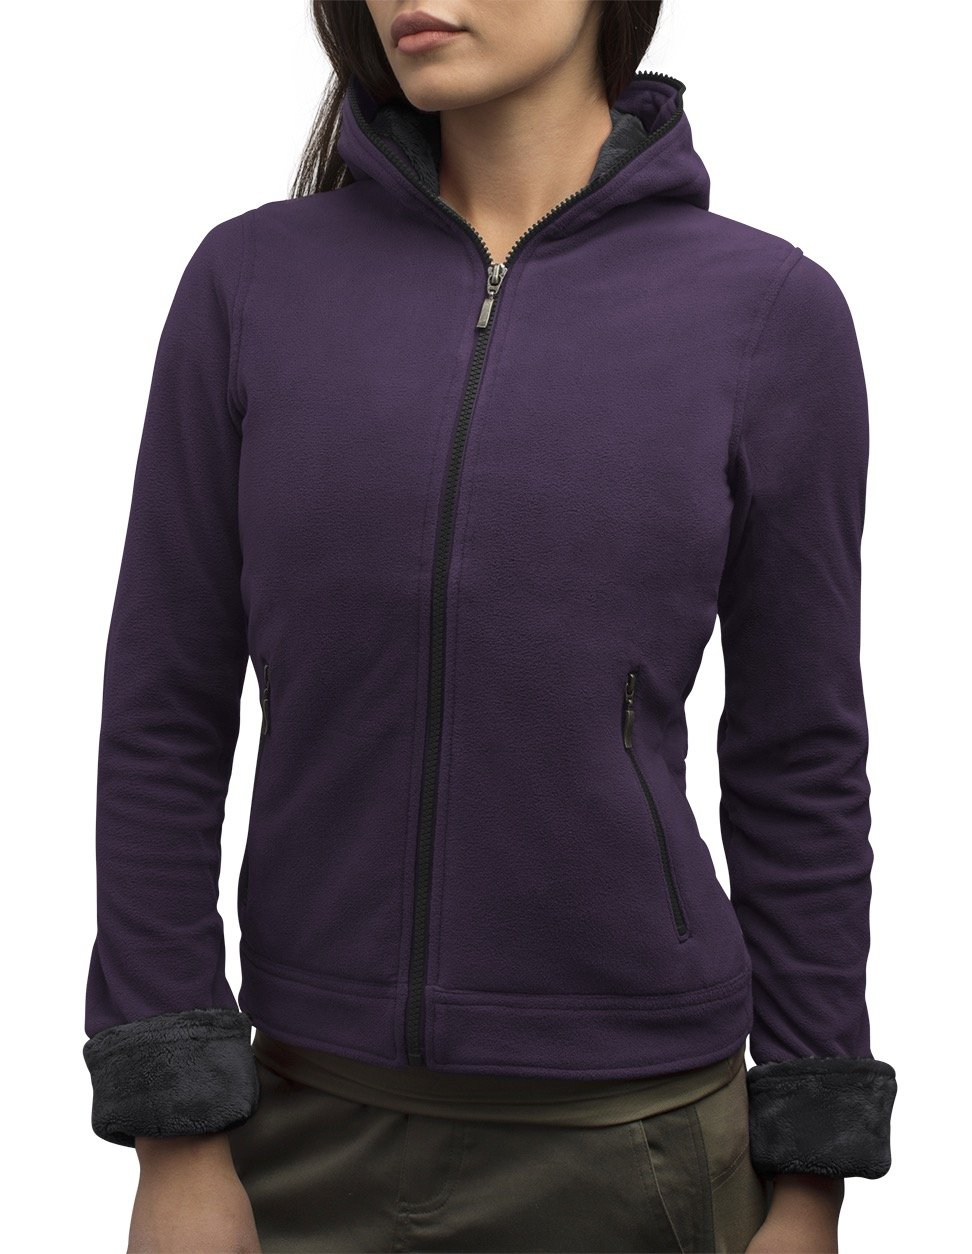 SCOTTeVEST Chloe Hoodie - 14 Pockets - Travel Clothing, Pickpocket Proof DAR XL by SCOTTeVEST (Image #1)